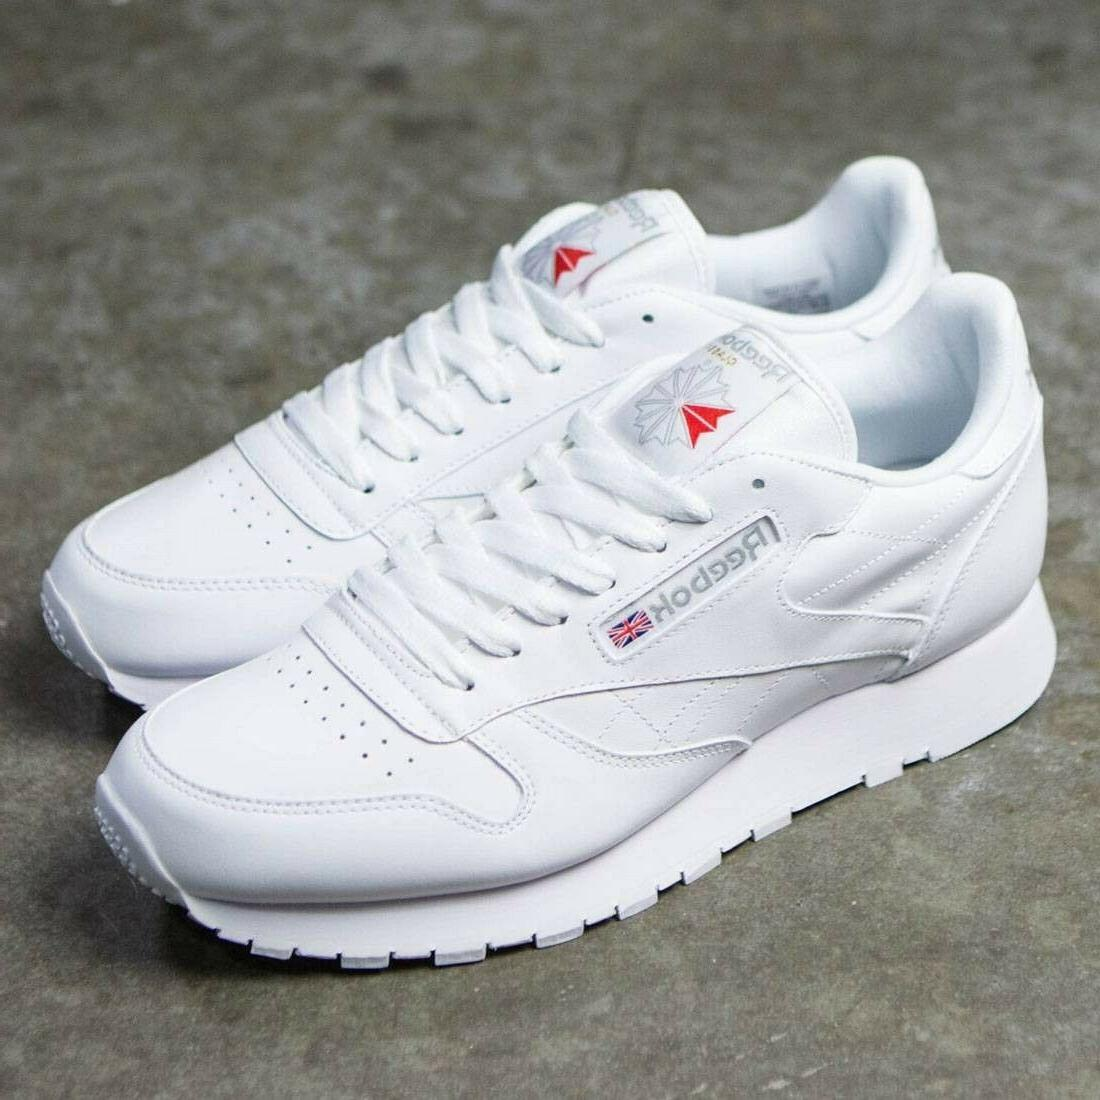 Reebok Classic Leather 9771 White Grey Red Mens Shoes Fashio